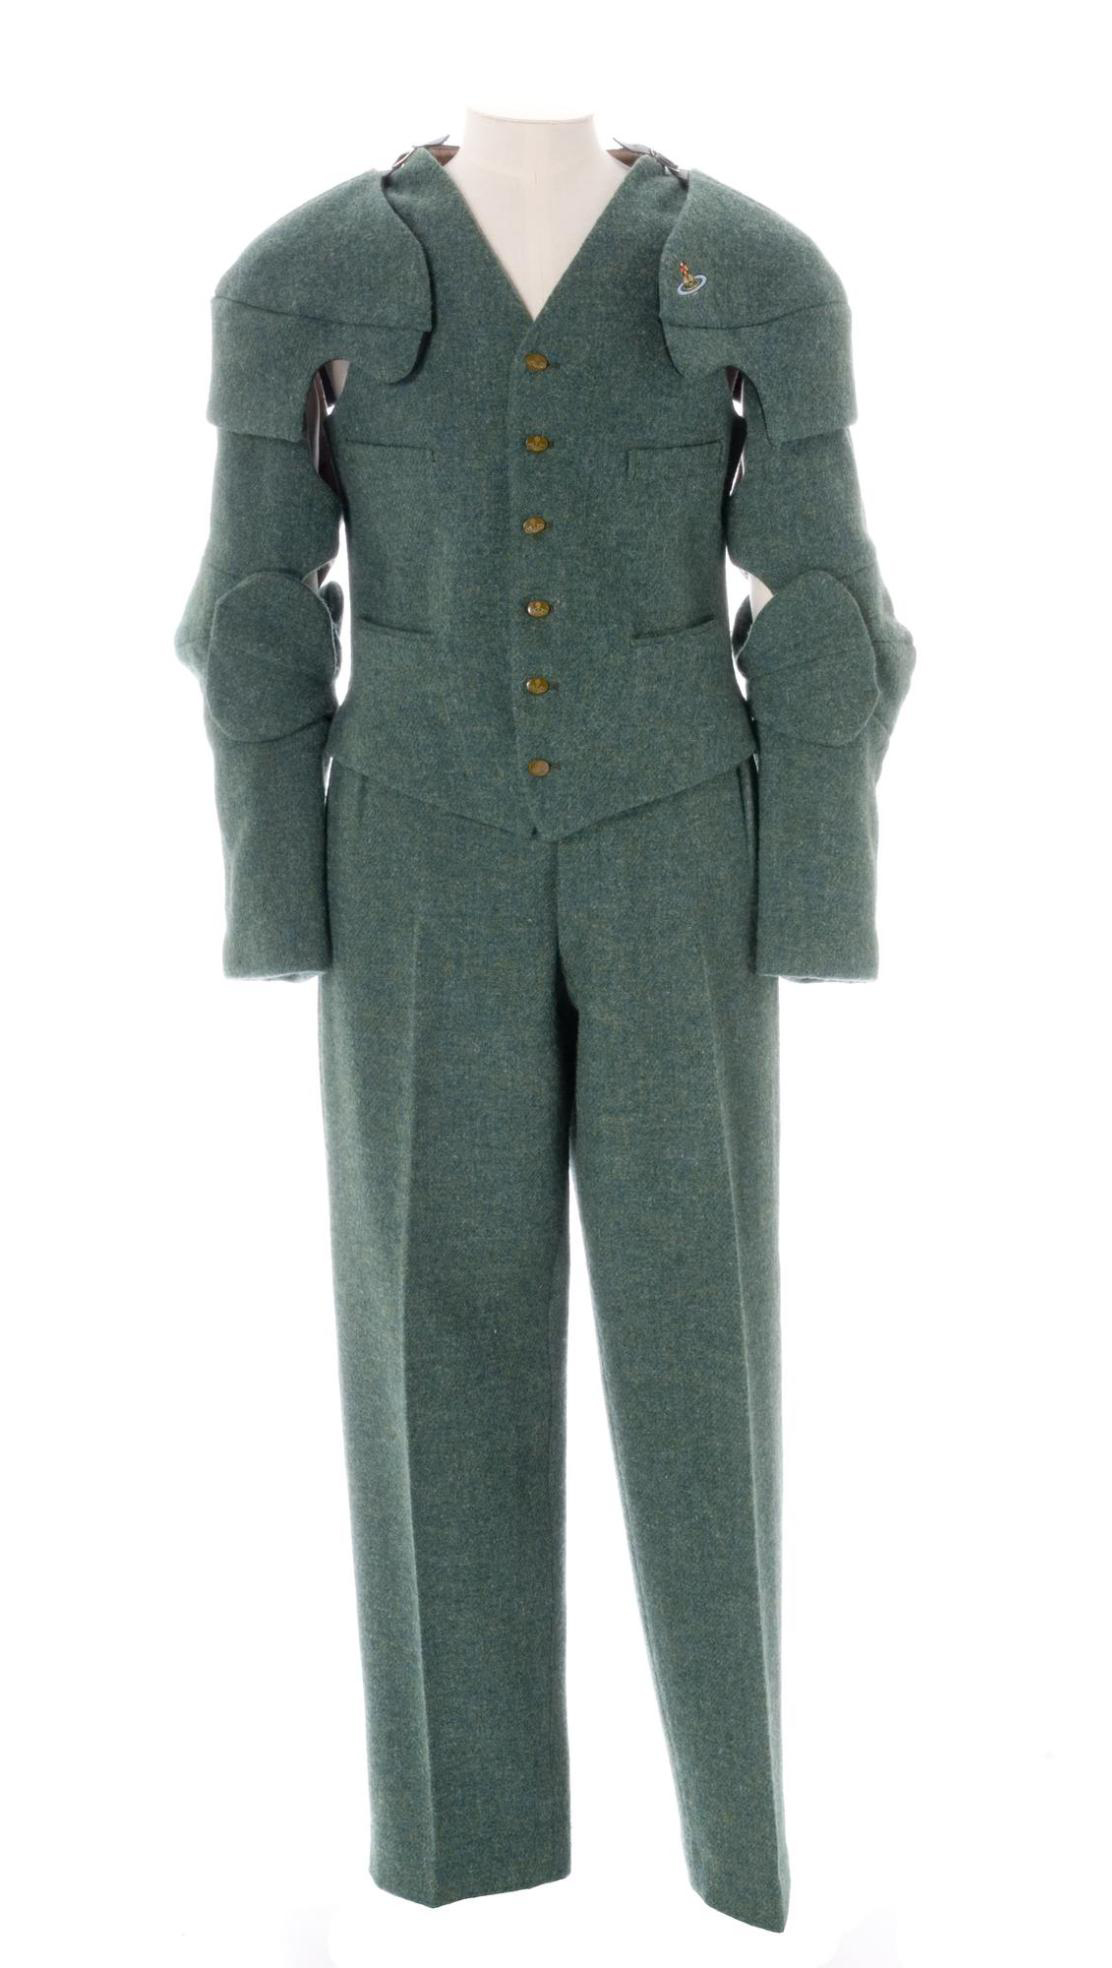 Men's suit of green wool Harris tweed from the Western Isles, designed by Vivienne Westwood for her Time Machine Collection, London, A/W 1988.